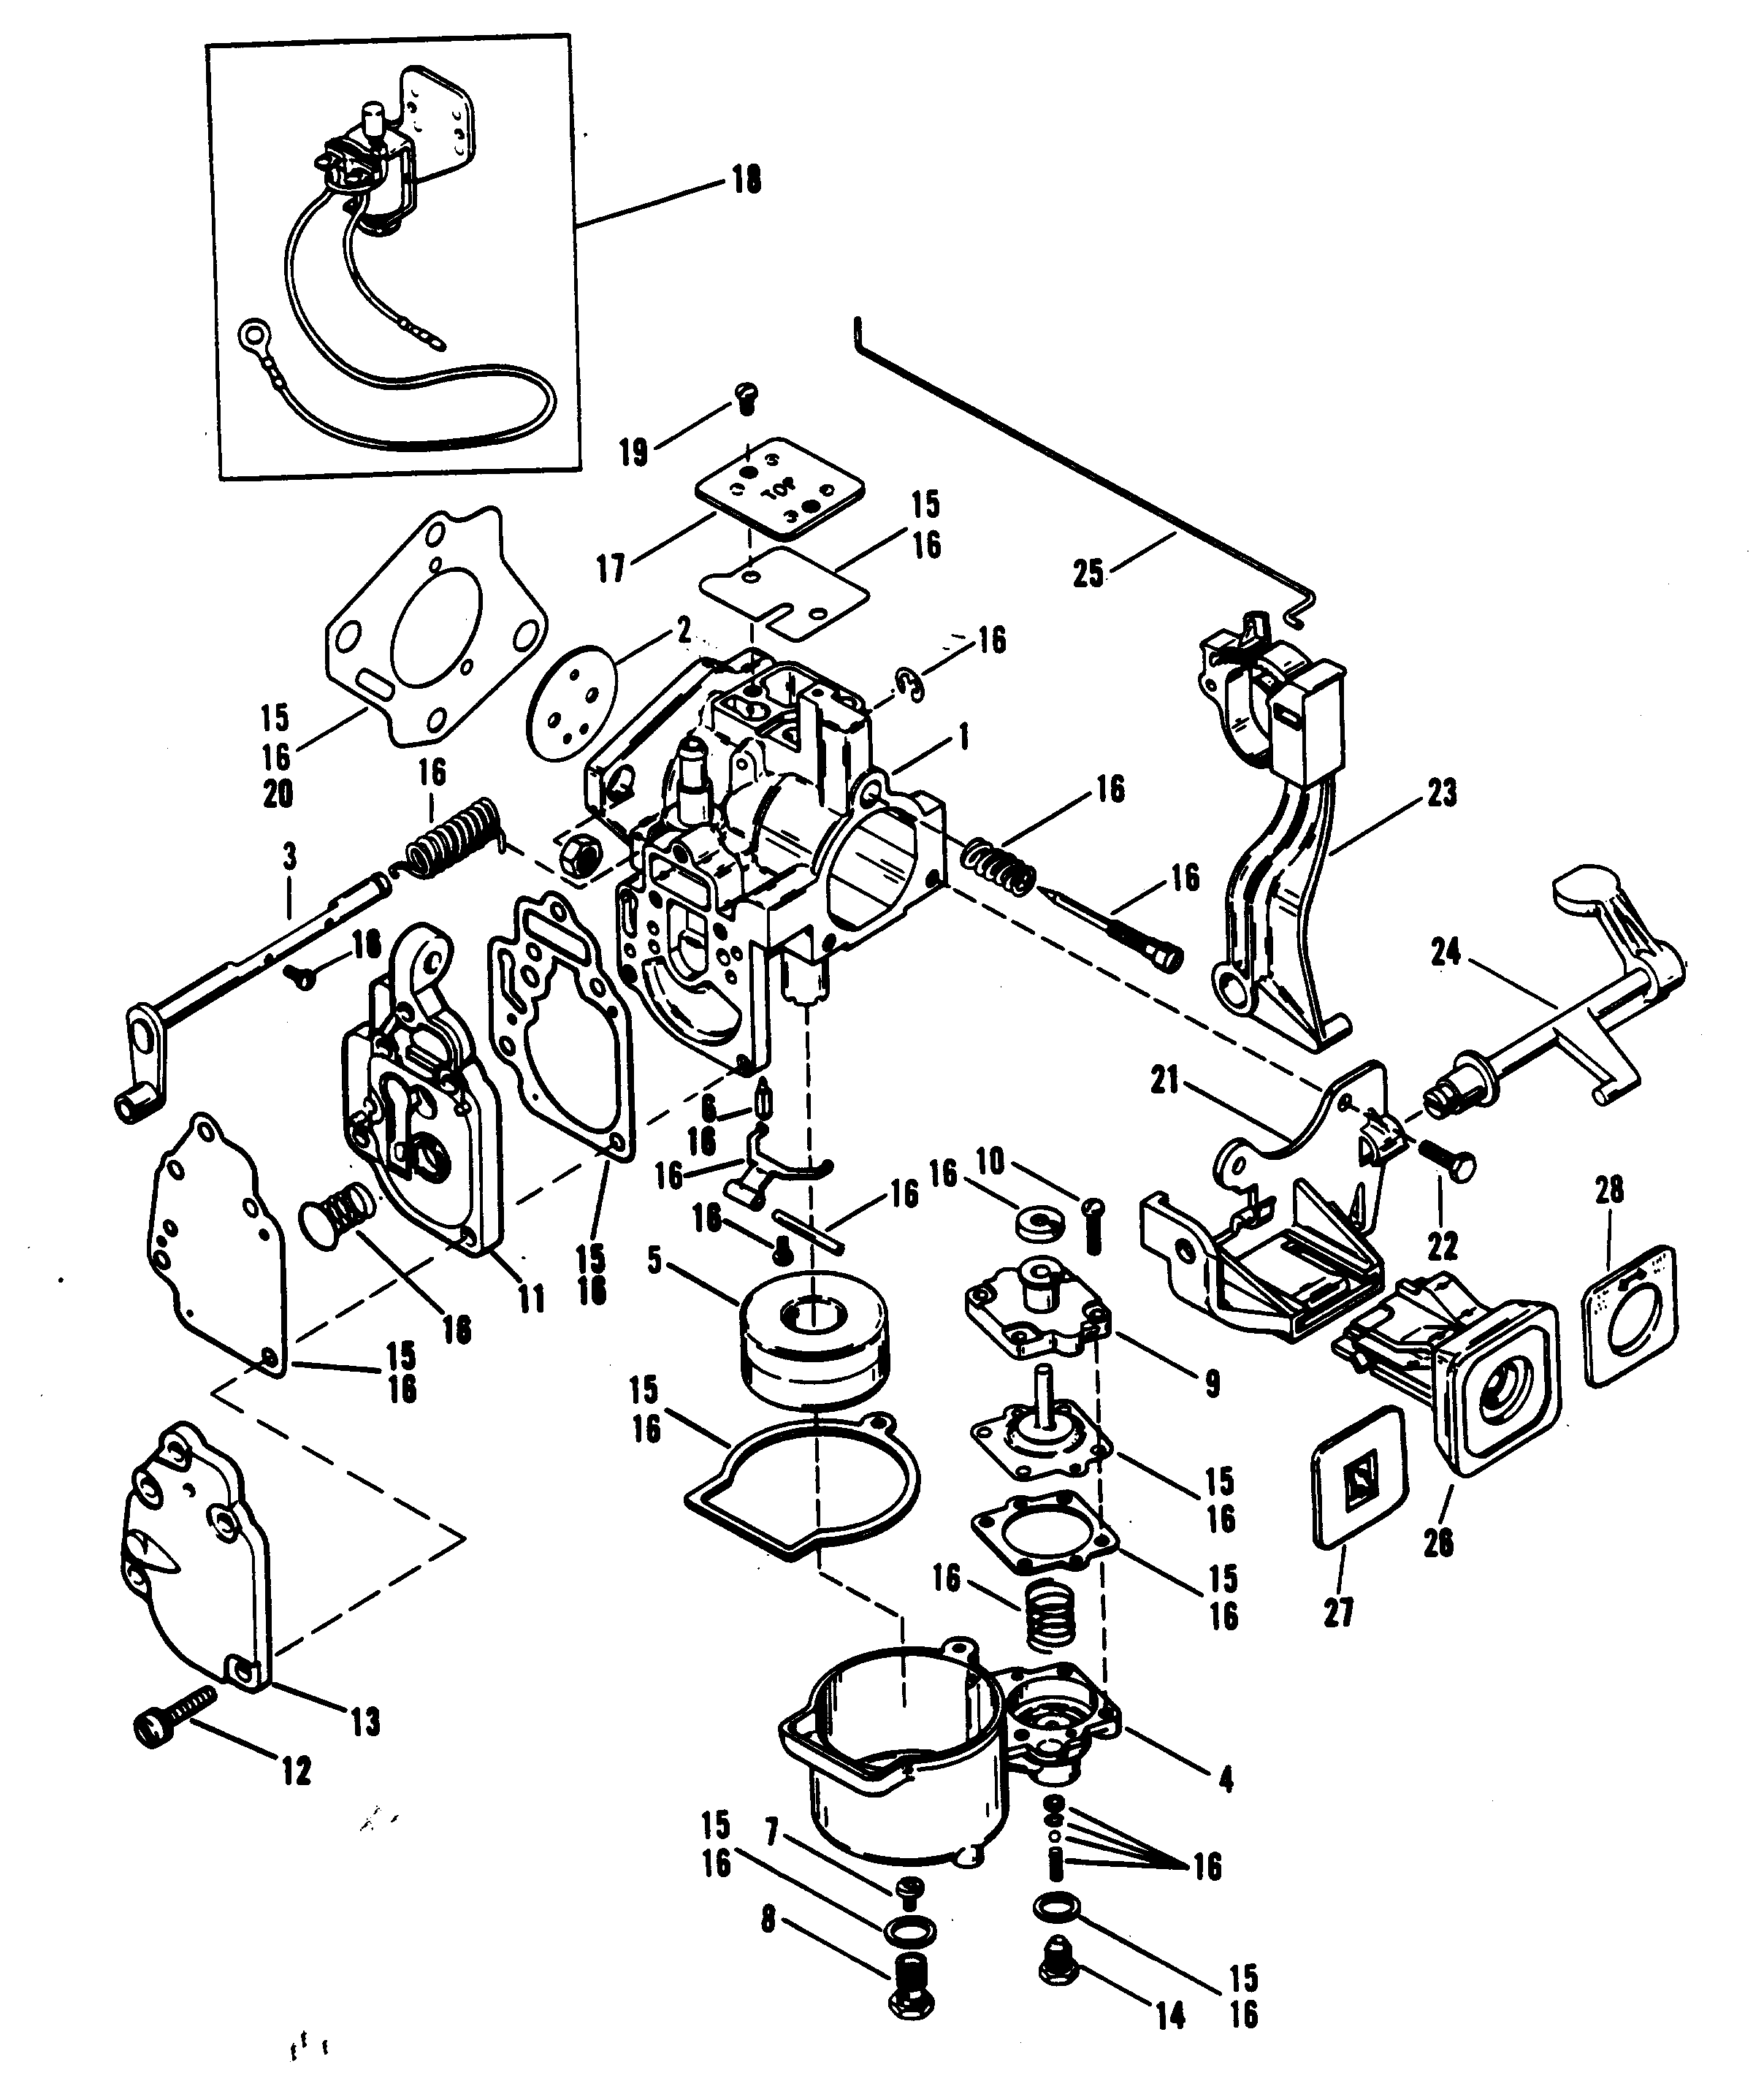 Mercury Outboard Motor Parts Diagram on 15 hp johnson outboard motor carburetor